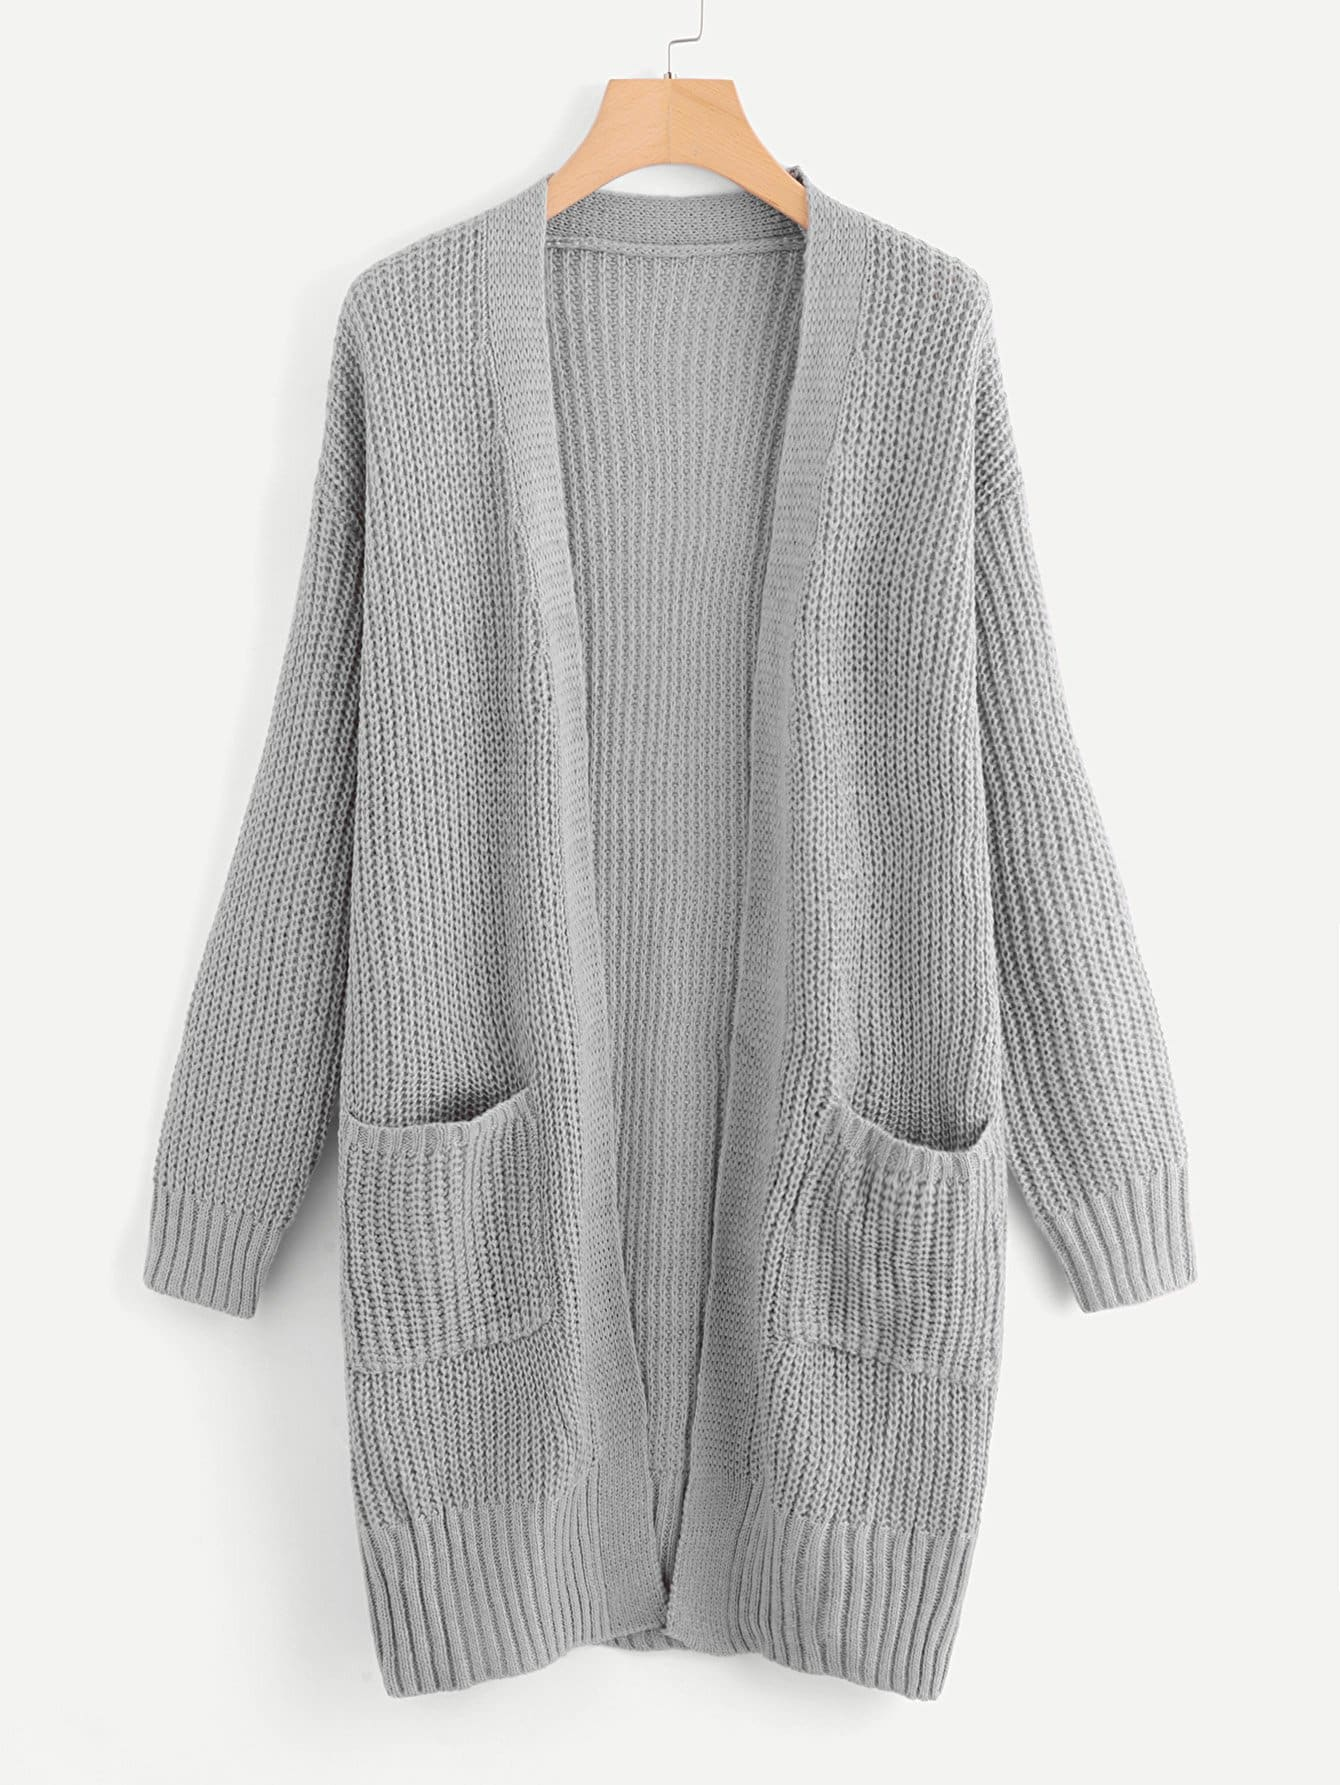 Patch Pocket Open Front Sweater Coat цена